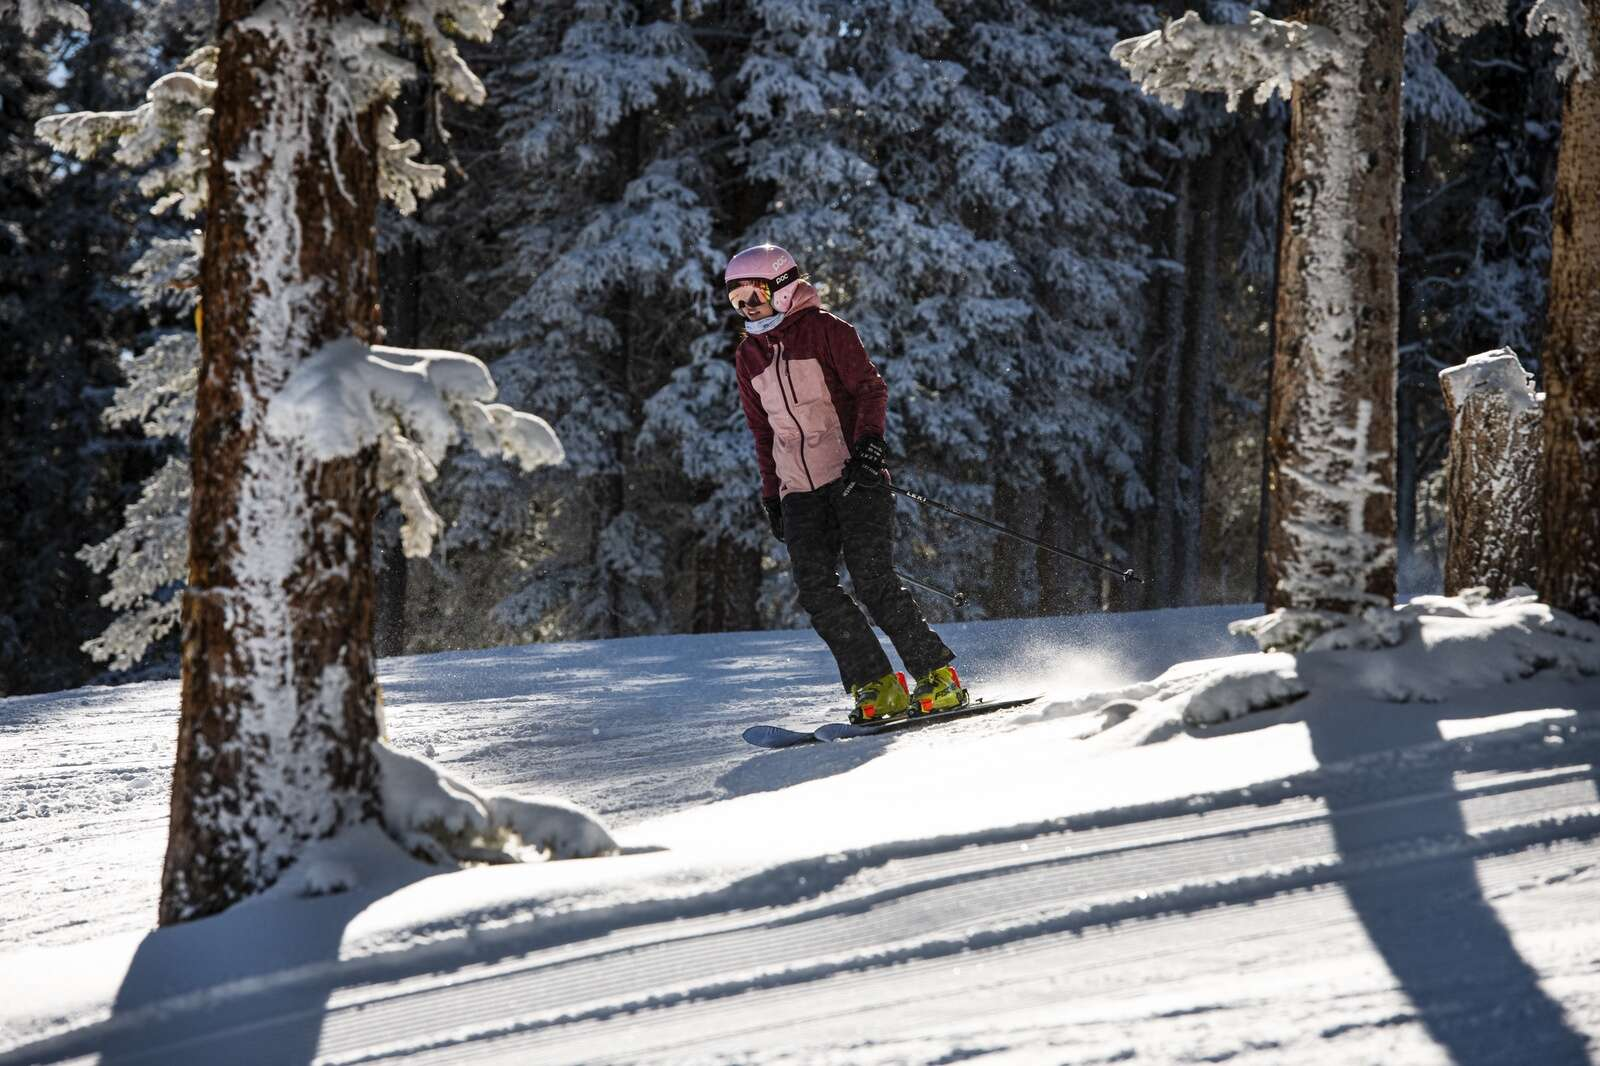 A skier makes her way down the mountain on opening day of Aspen Mountain on Wednesday, Nov. 25, 2020. (Kelsey Brunner/The Aspen Times)